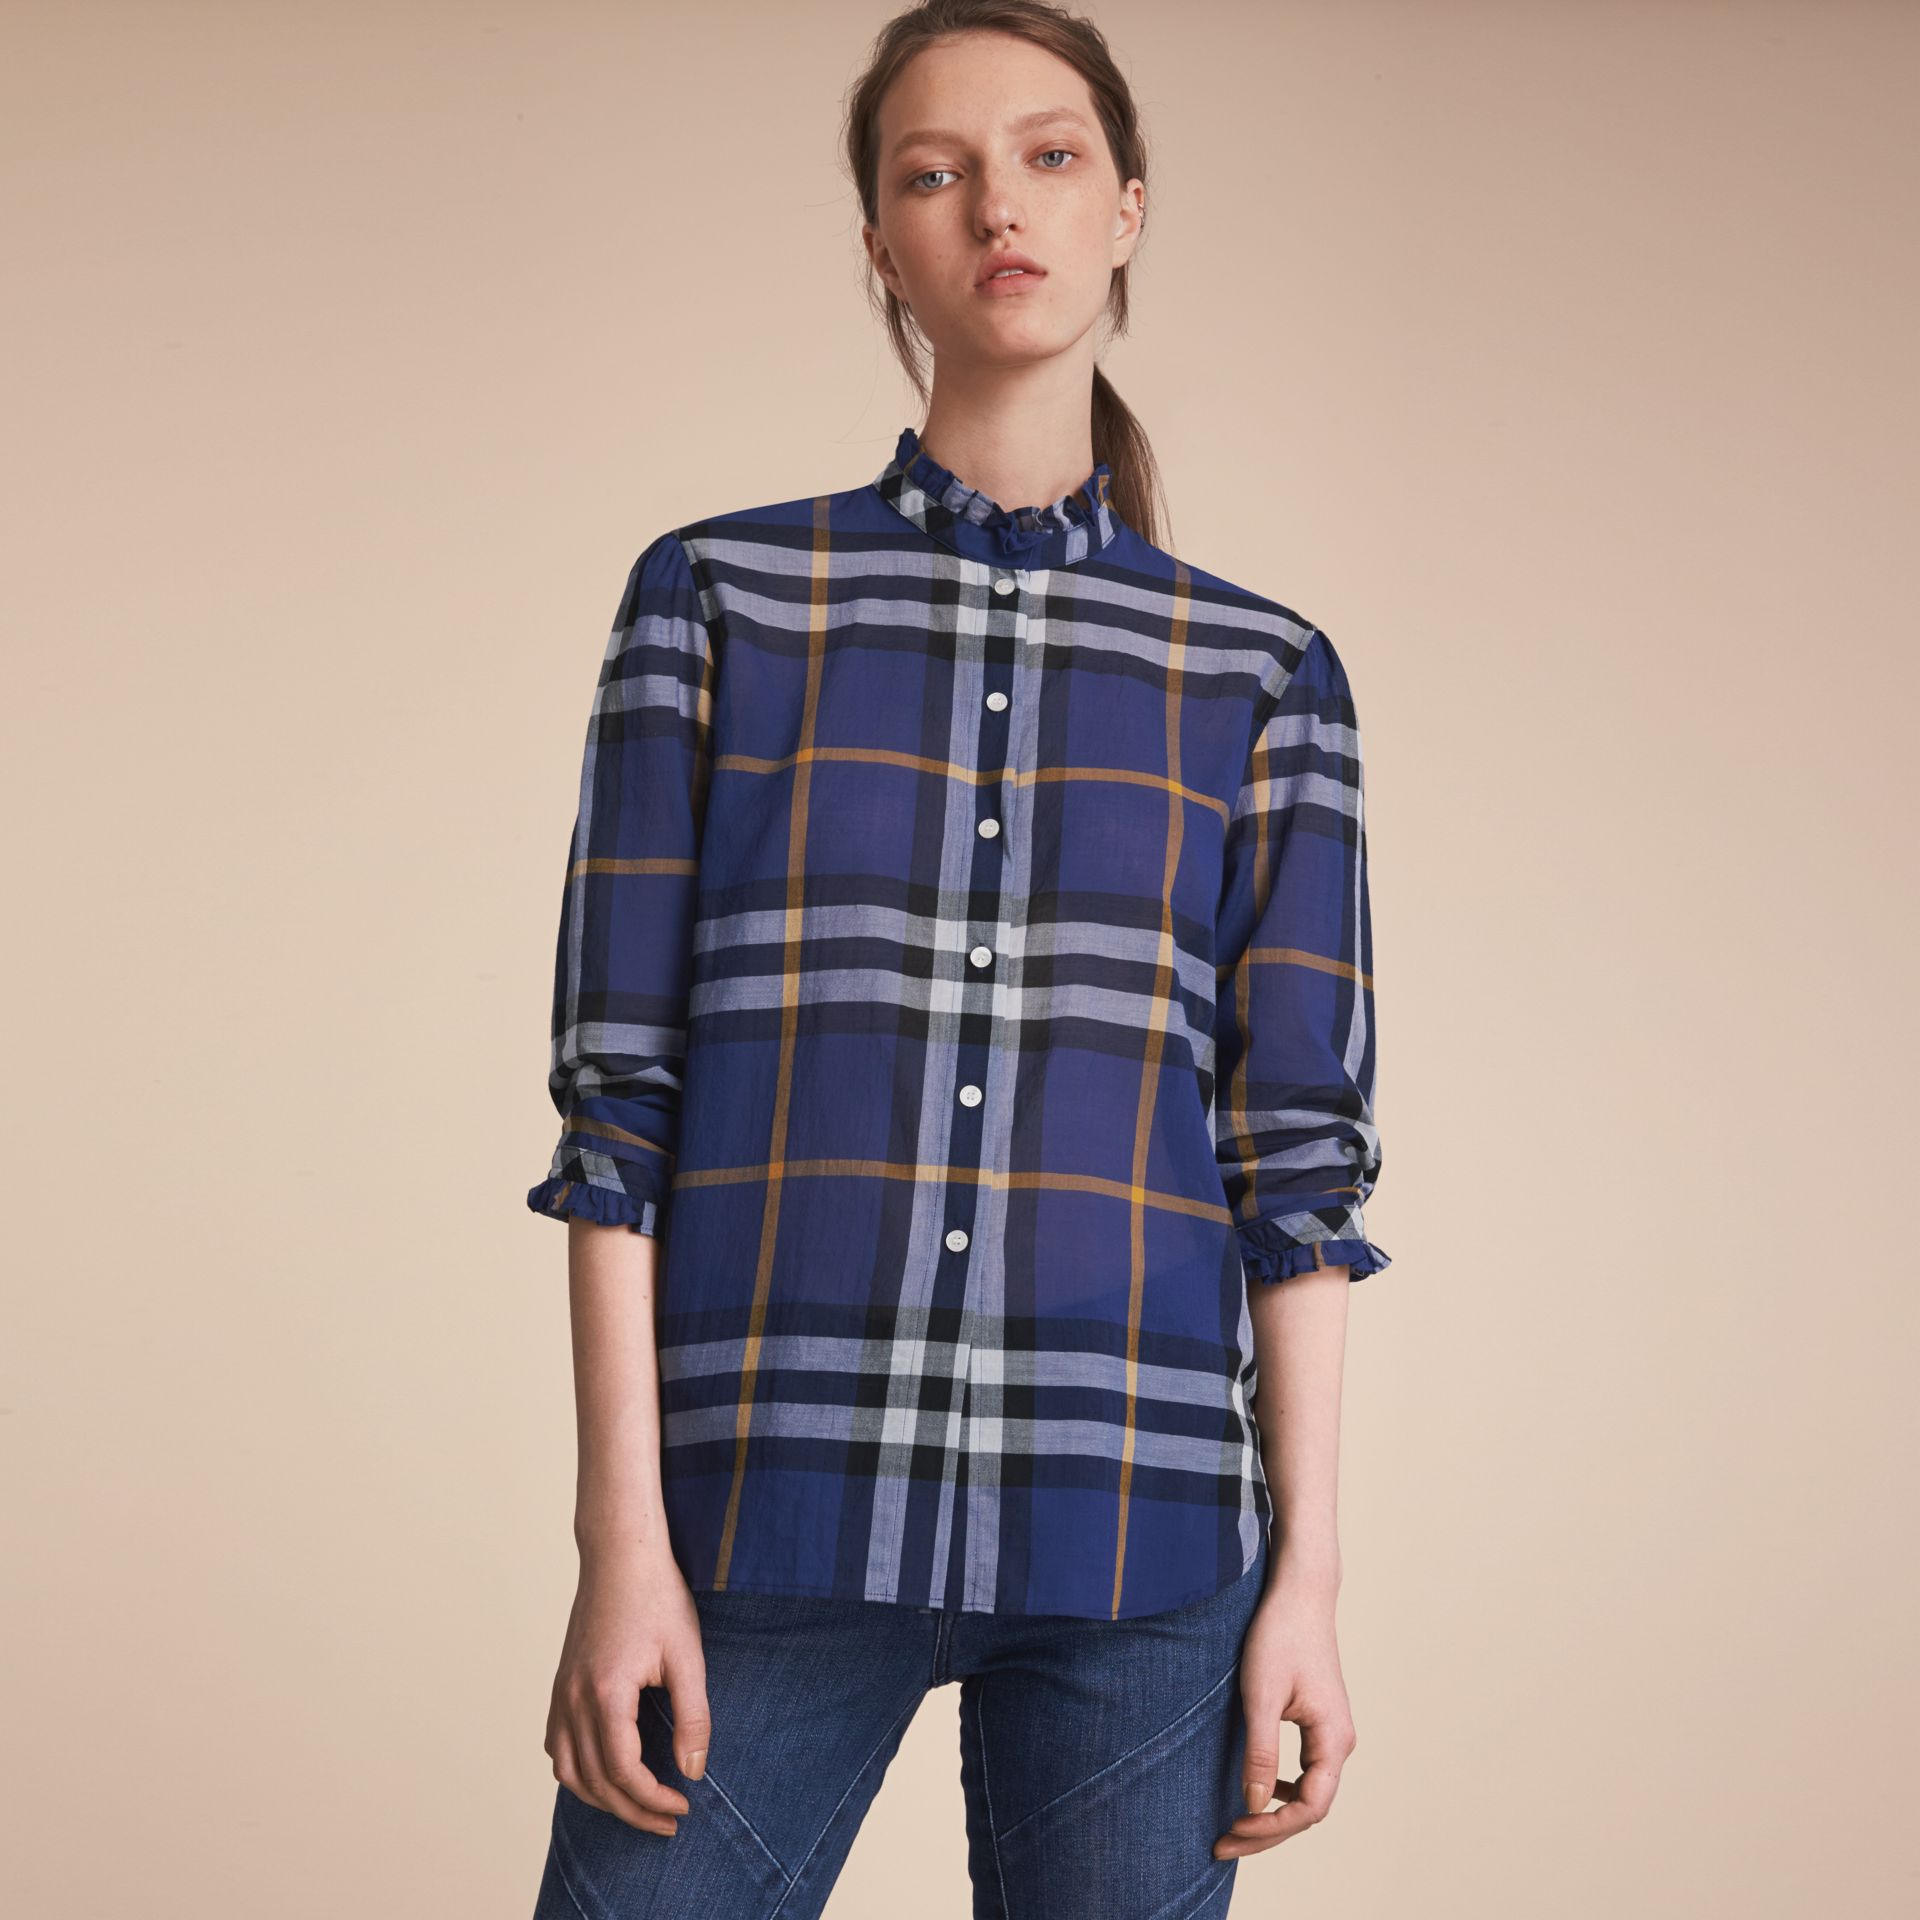 Ruffle Detail Check Cotton Shirt in Lapis Blue - Women | Burberry - gallery image 6